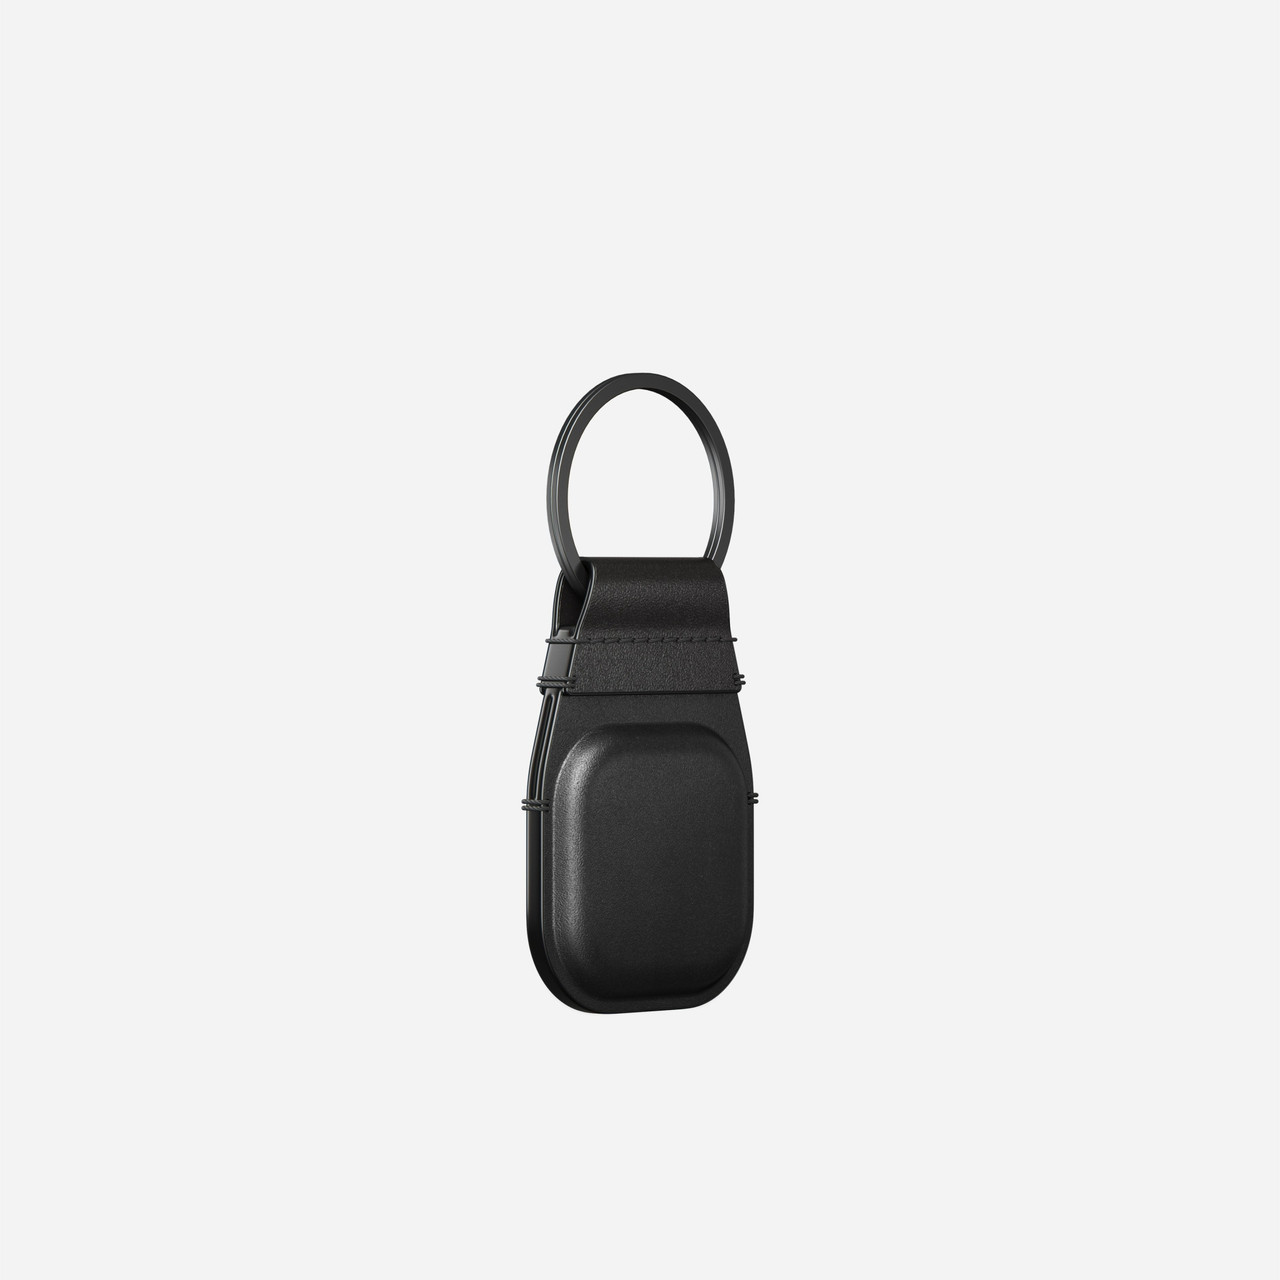 Nomad Keychain - for AirTag Leather Keychain Horween Leather - Black